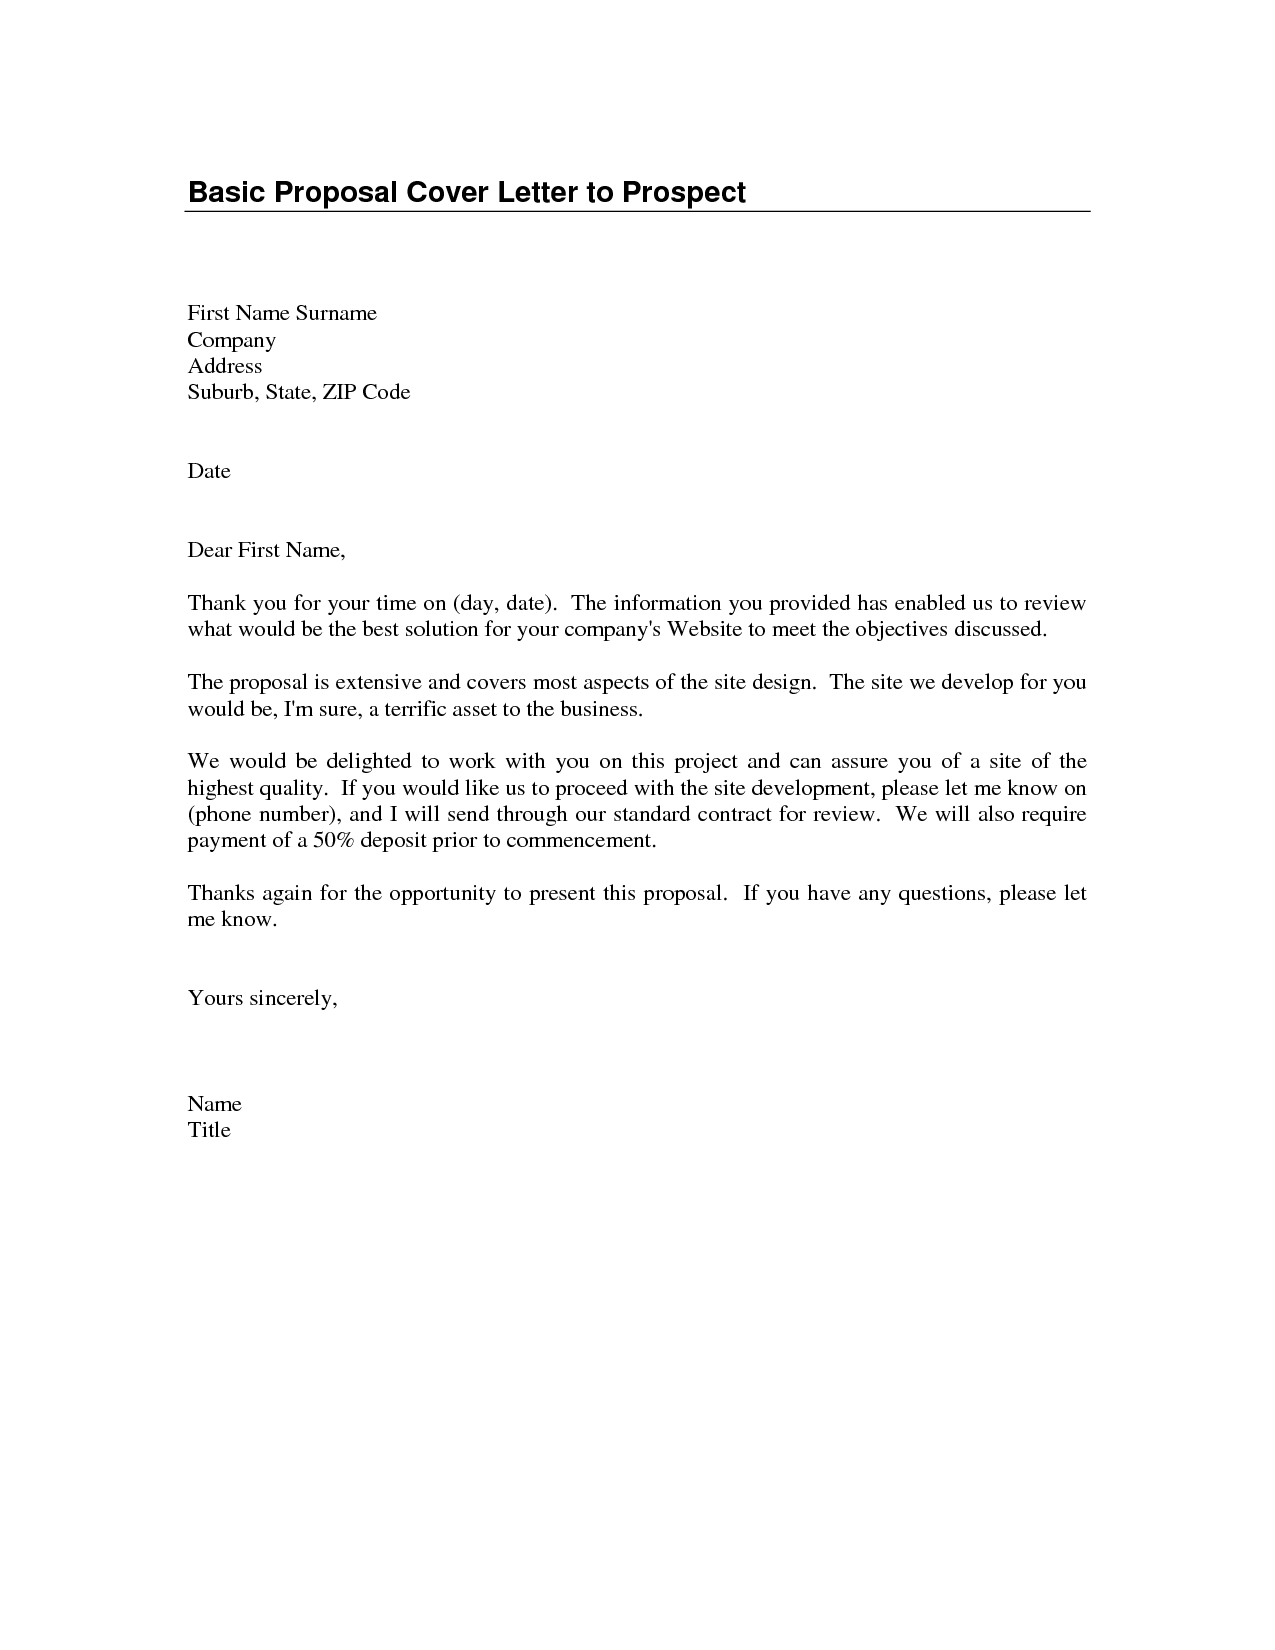 Proposal Cover Letter Template | Cover Letter Proposal Scrumps